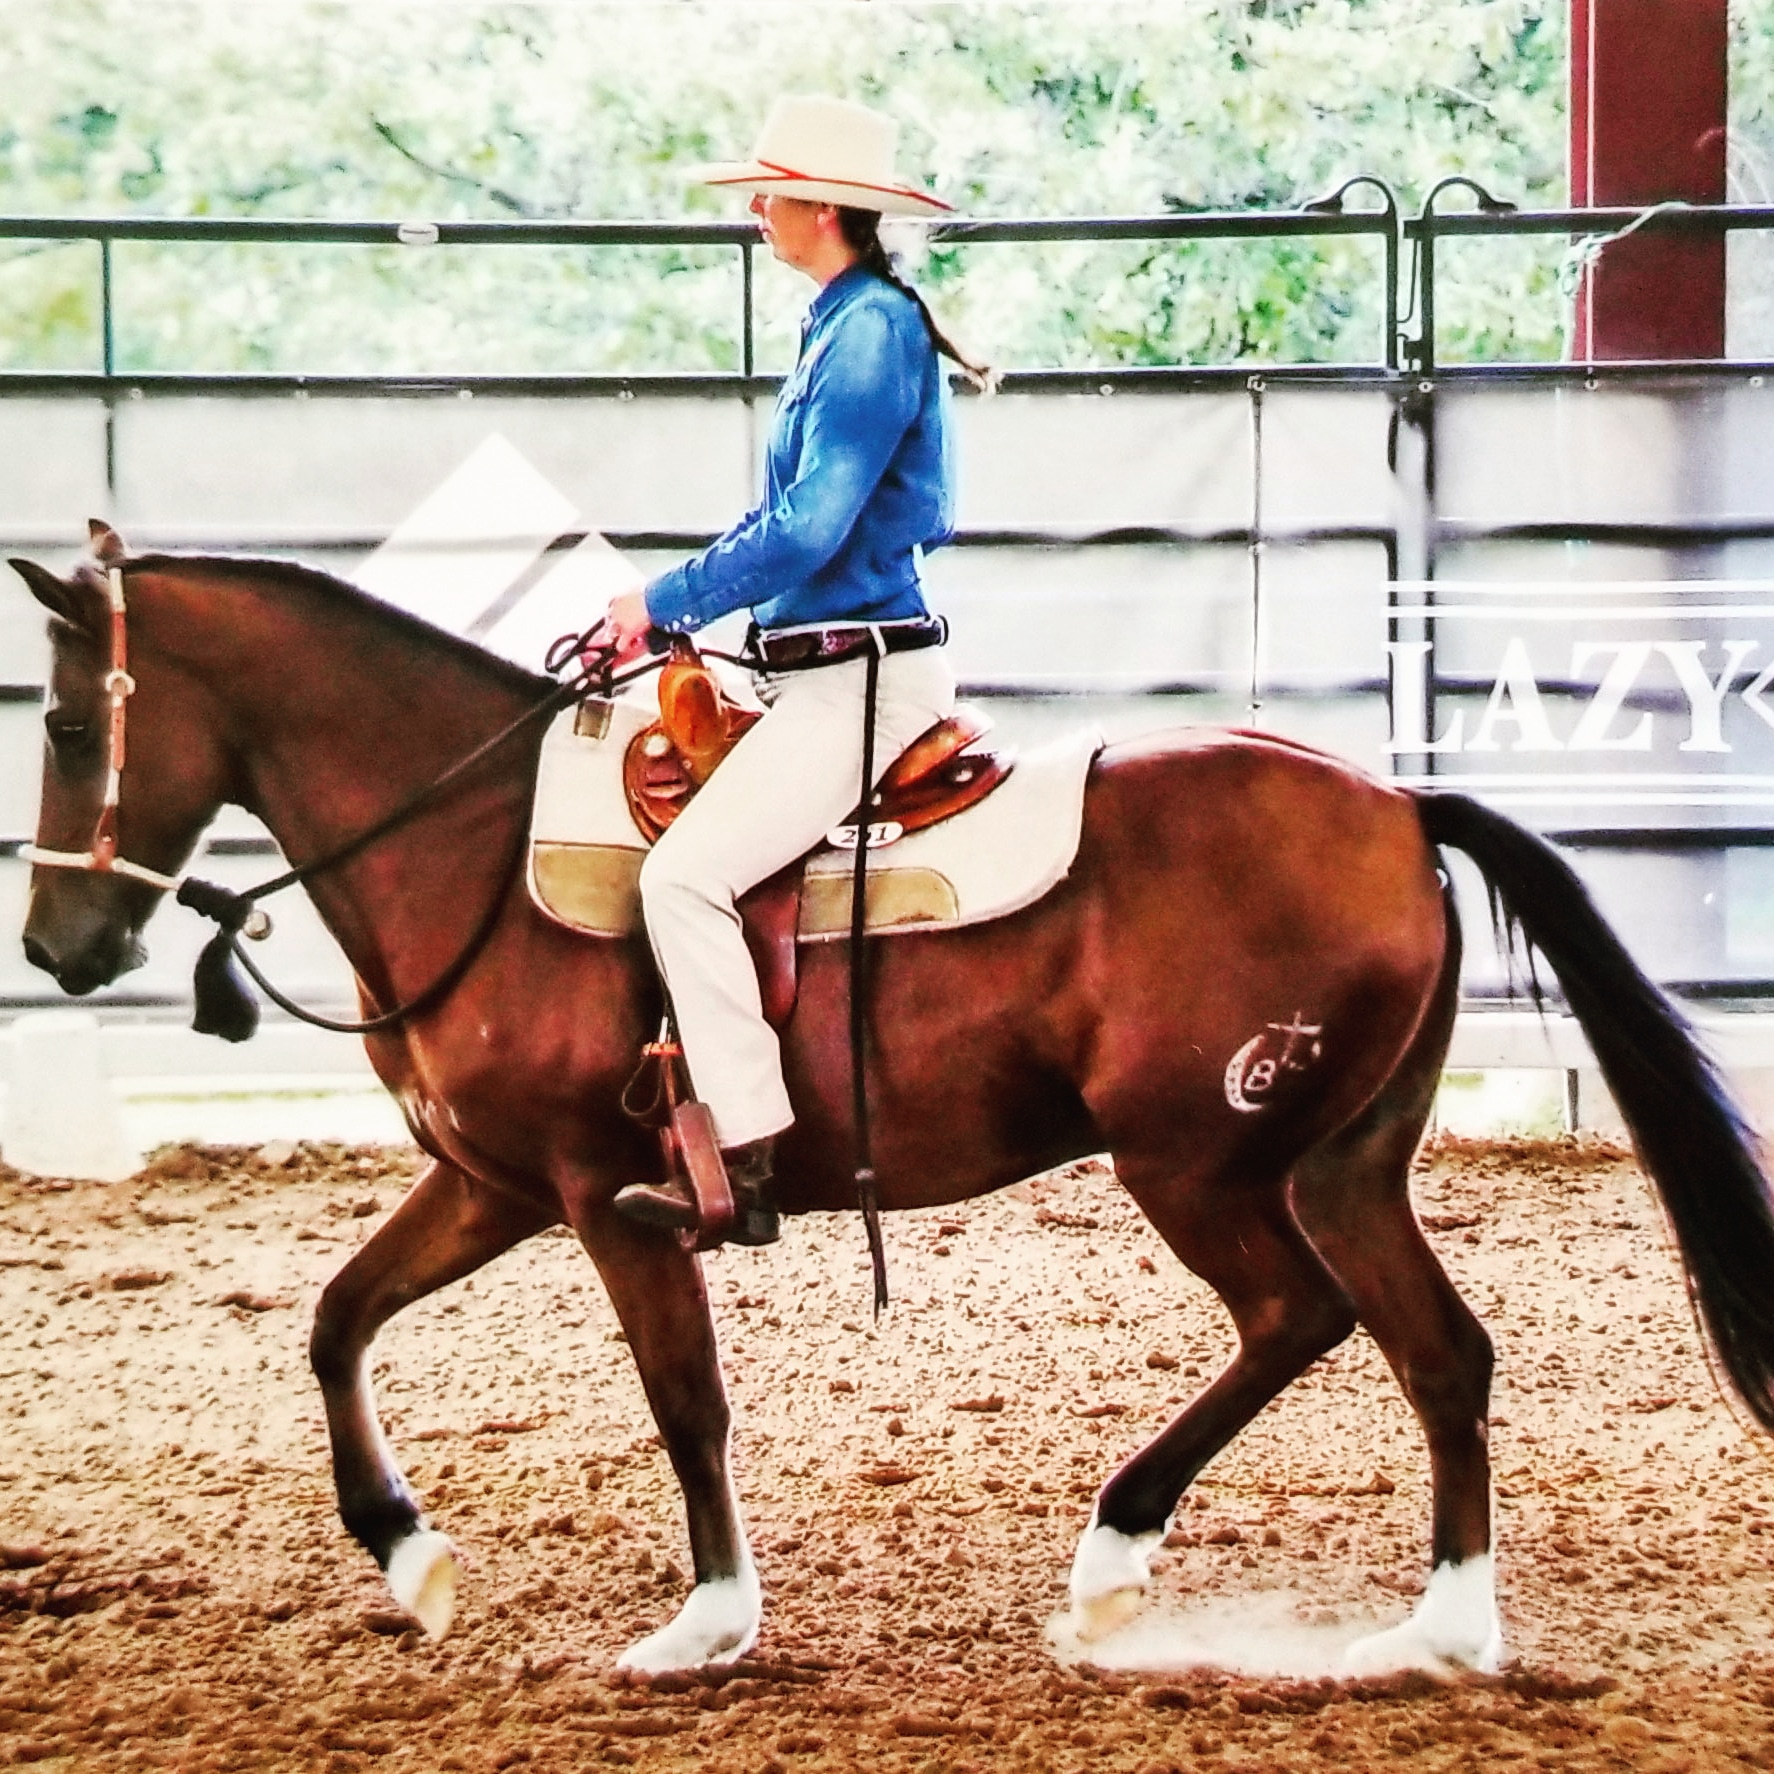 Art of Horsemanship LLC